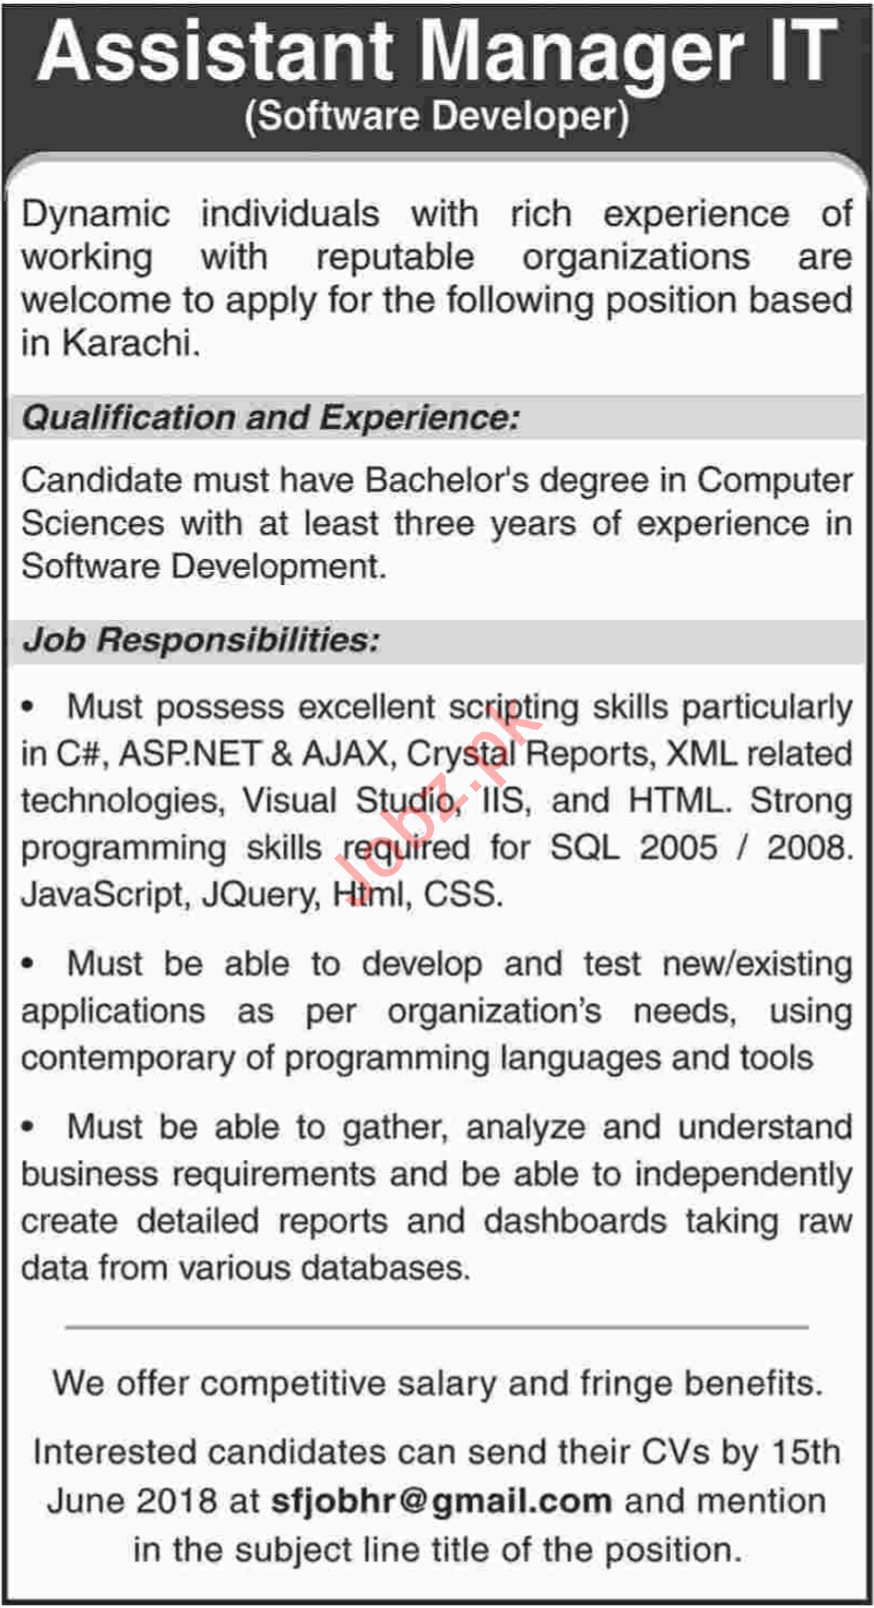 Assistant Manager IT Jobs 2018